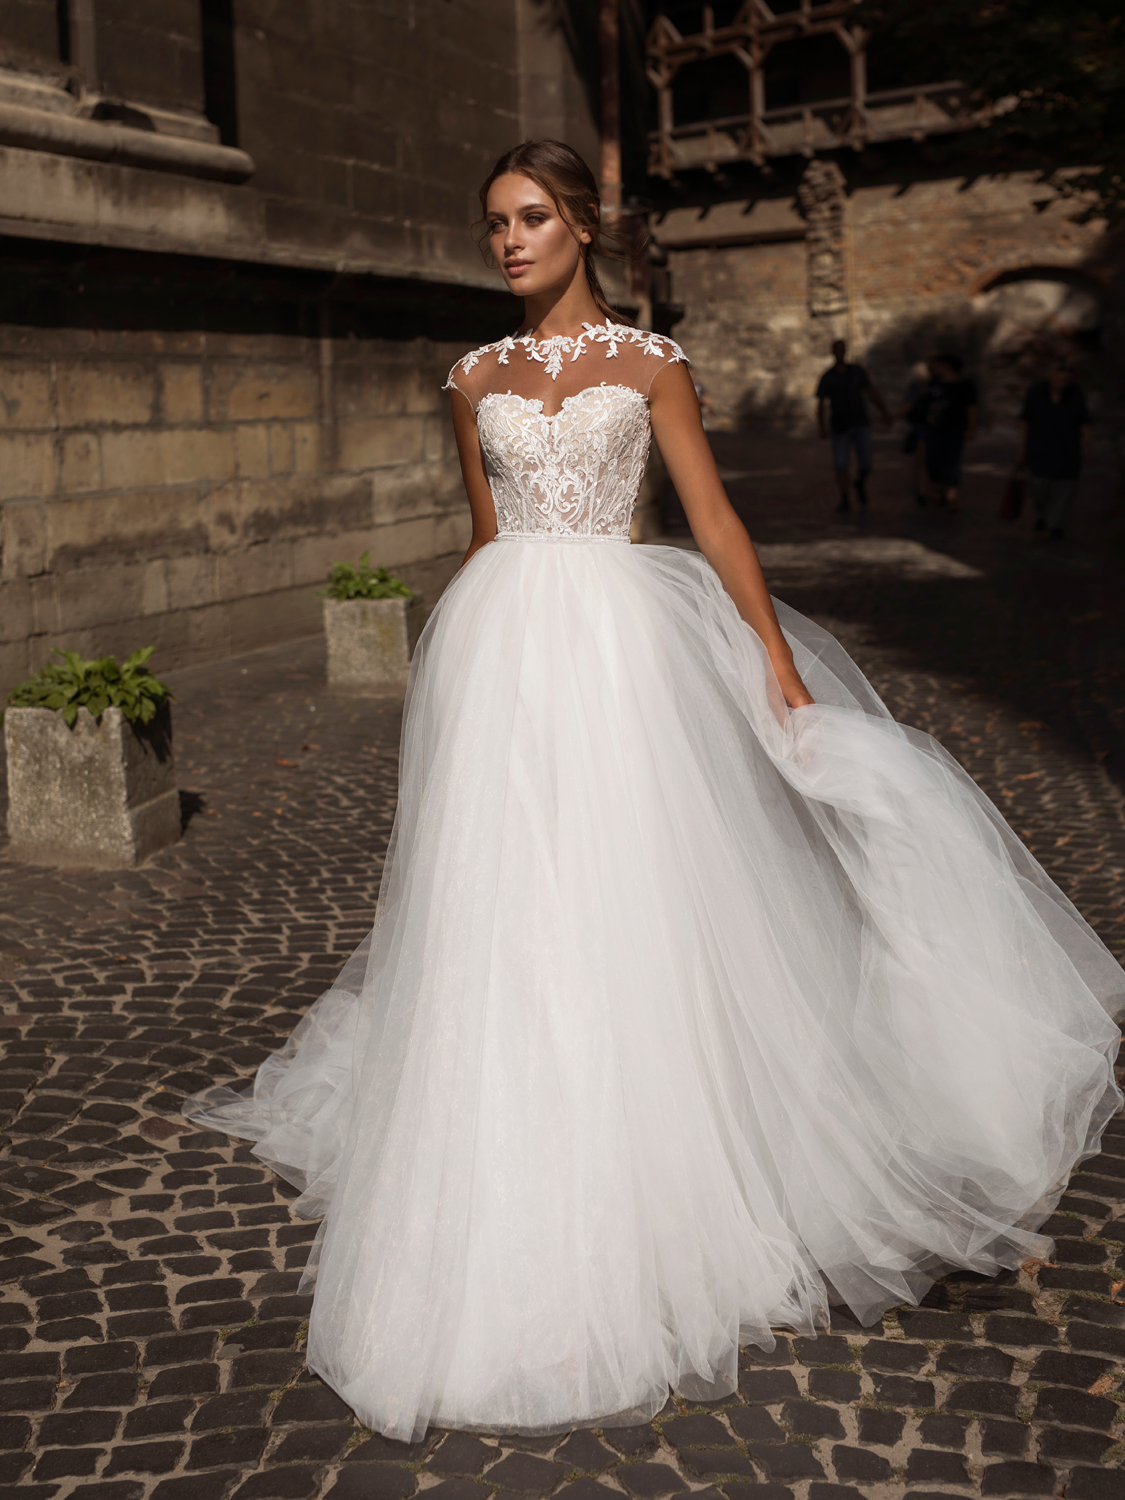 liri_designer_Wedding_Dress_Lydia.jpg